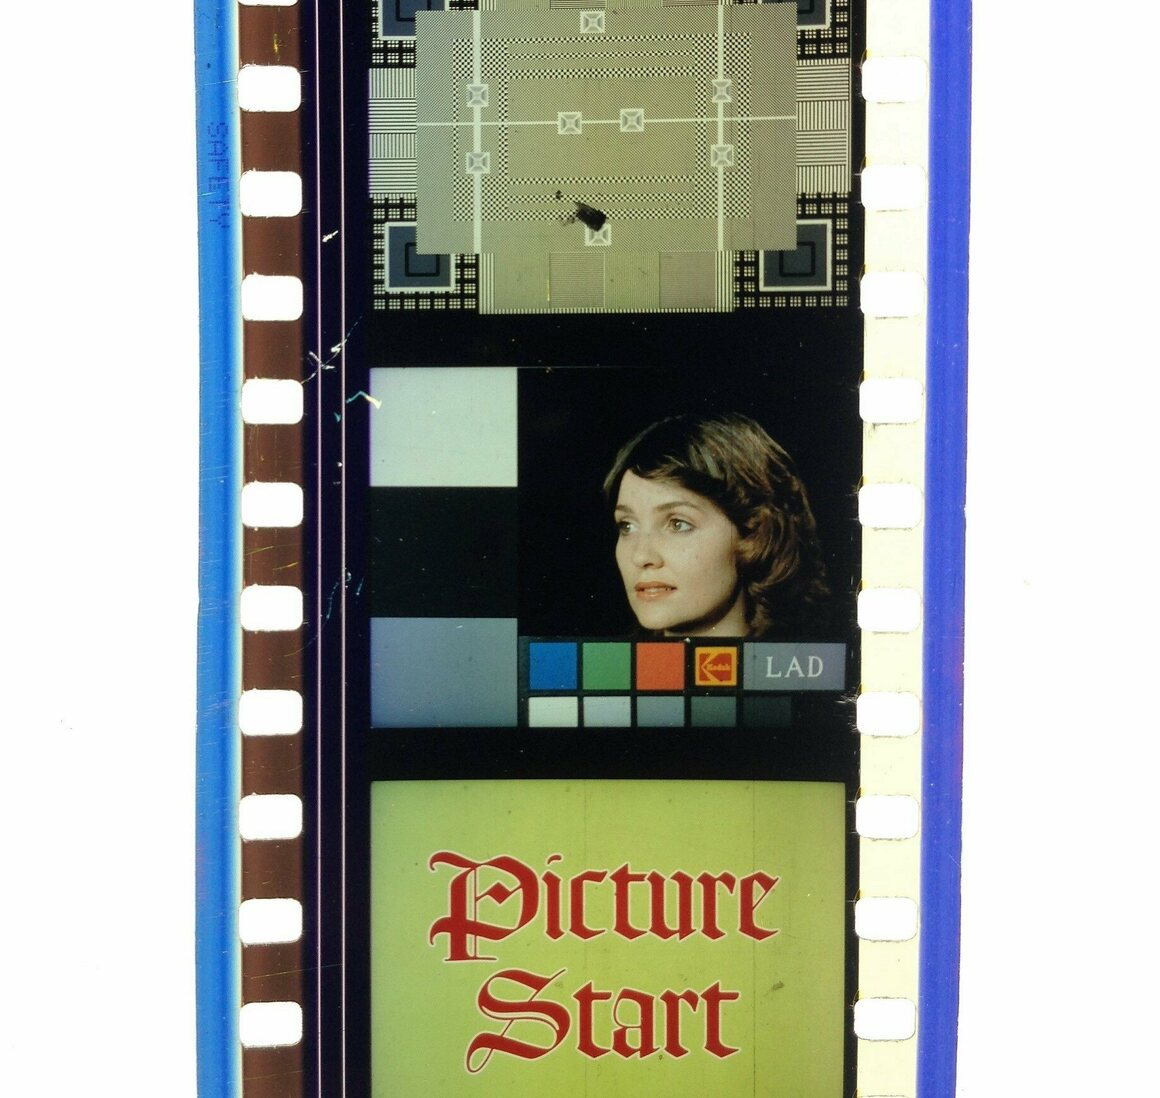 The Kodak LAD girl helped standardize the practice.